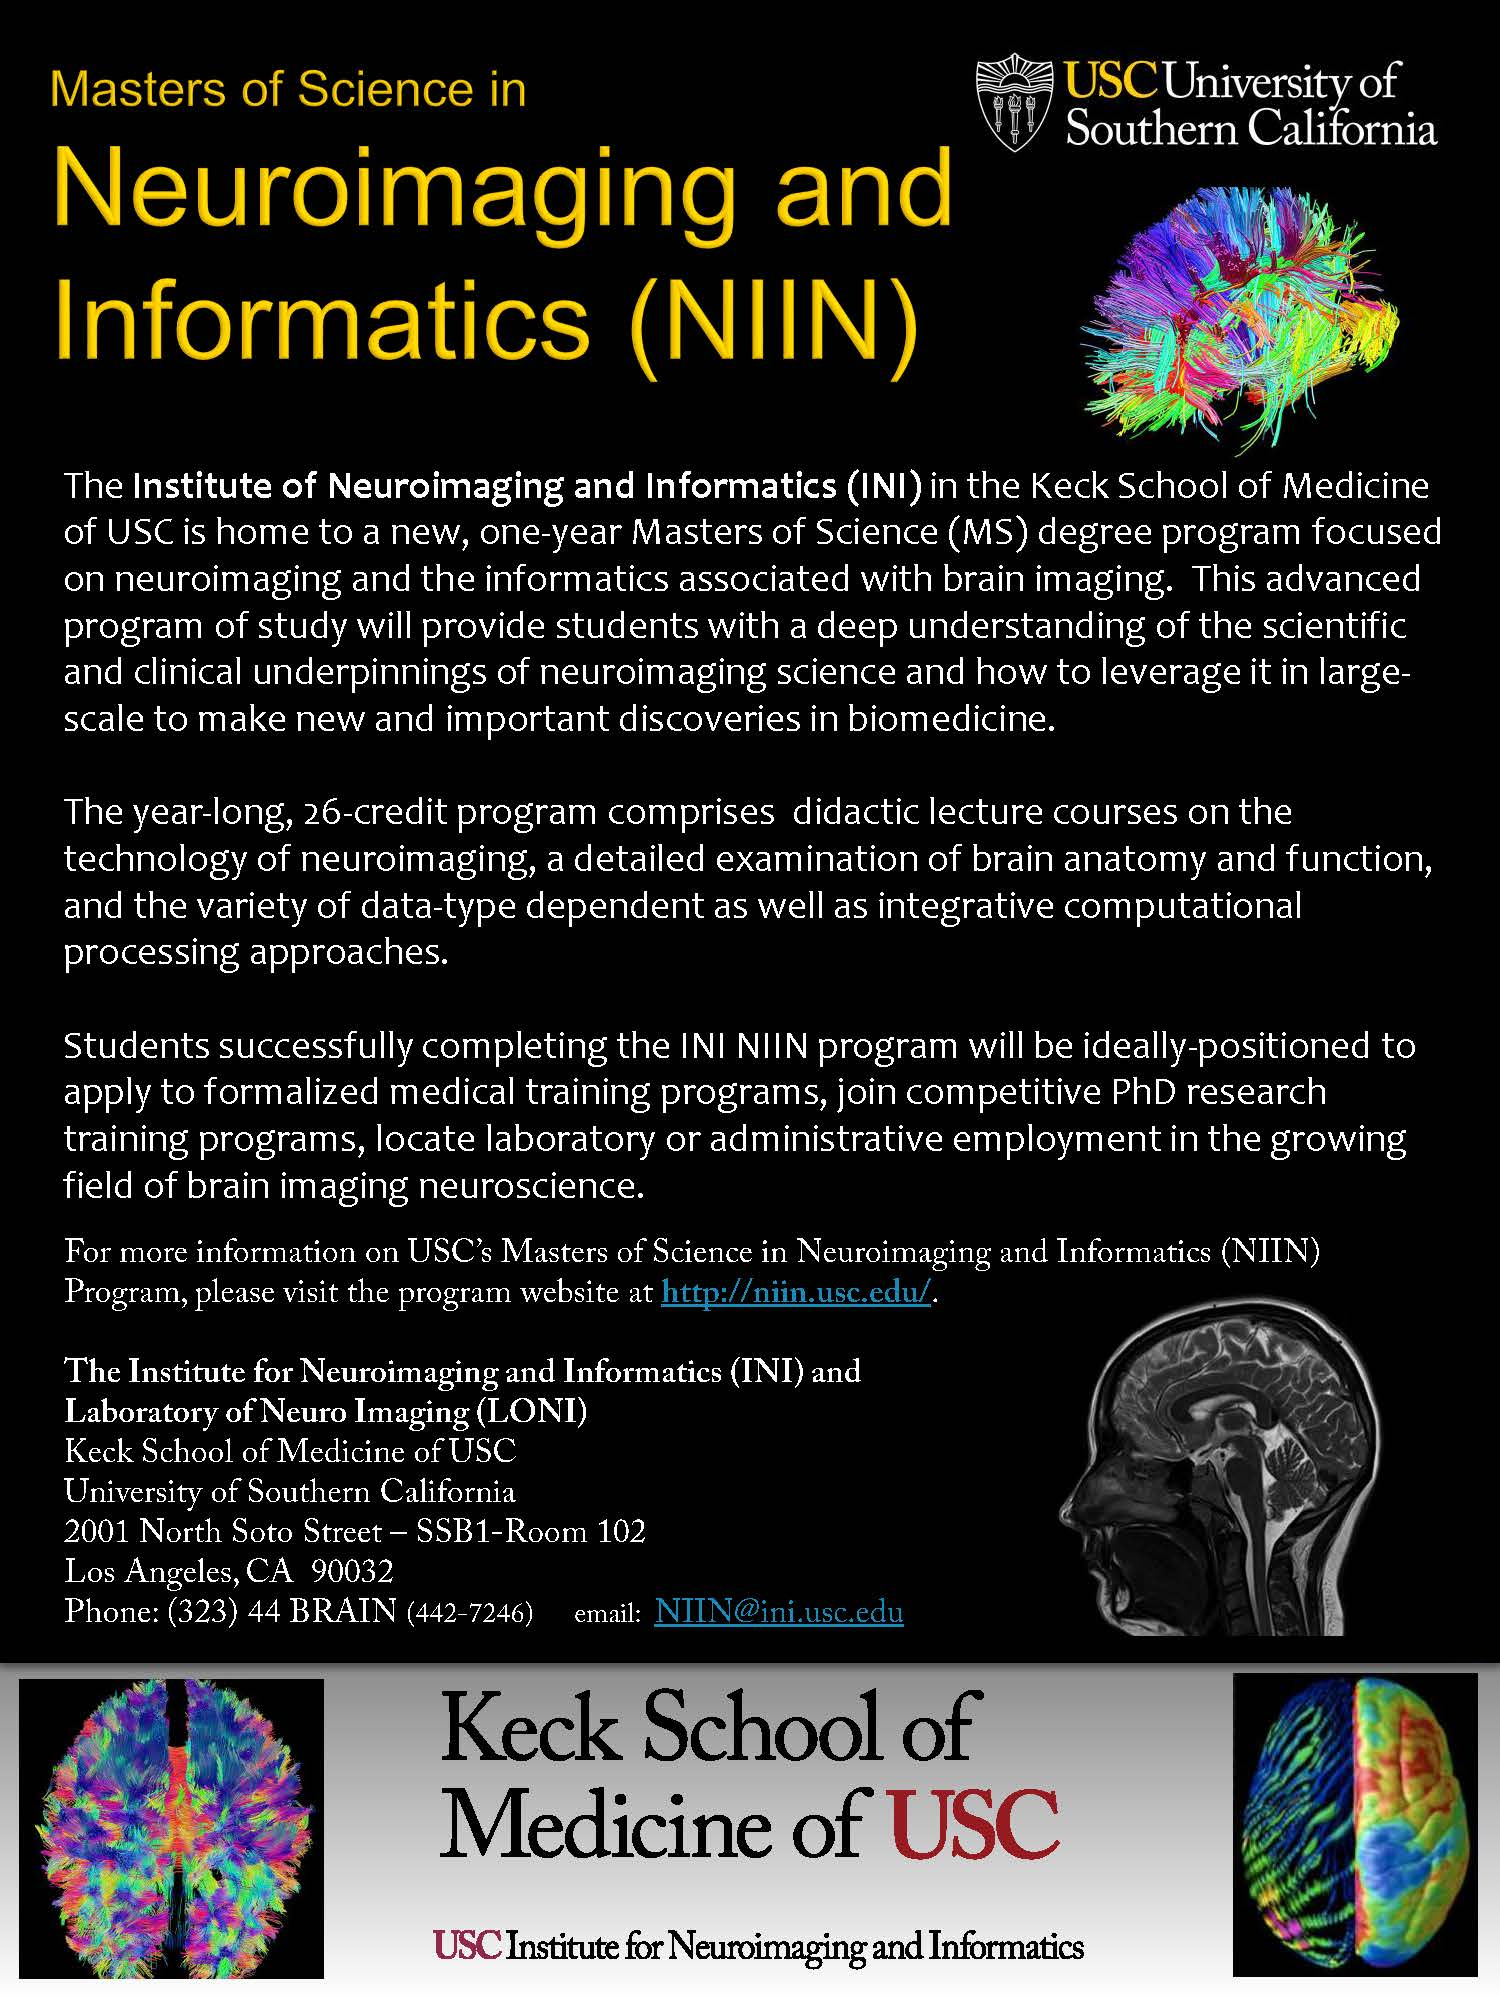 NEW USC Masters of Science in Neuroimaging and Informatics